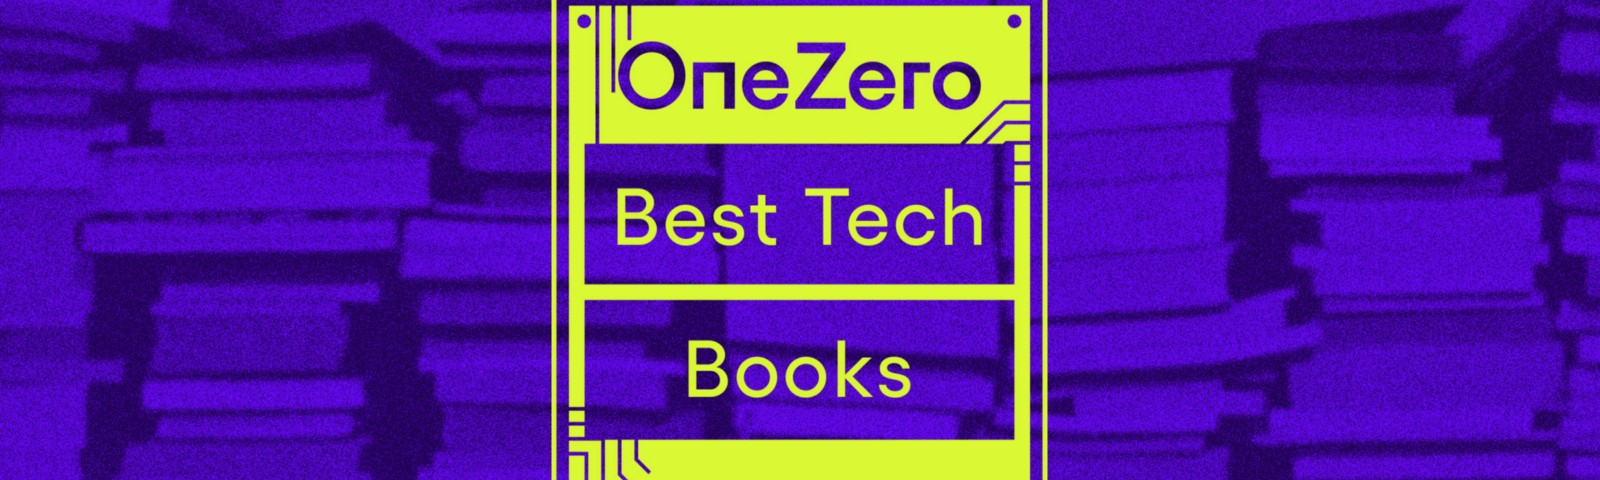 """A square graphic with the text """"OneZero Best Tech Books 2020"""" placed over a background image of stacks of books."""